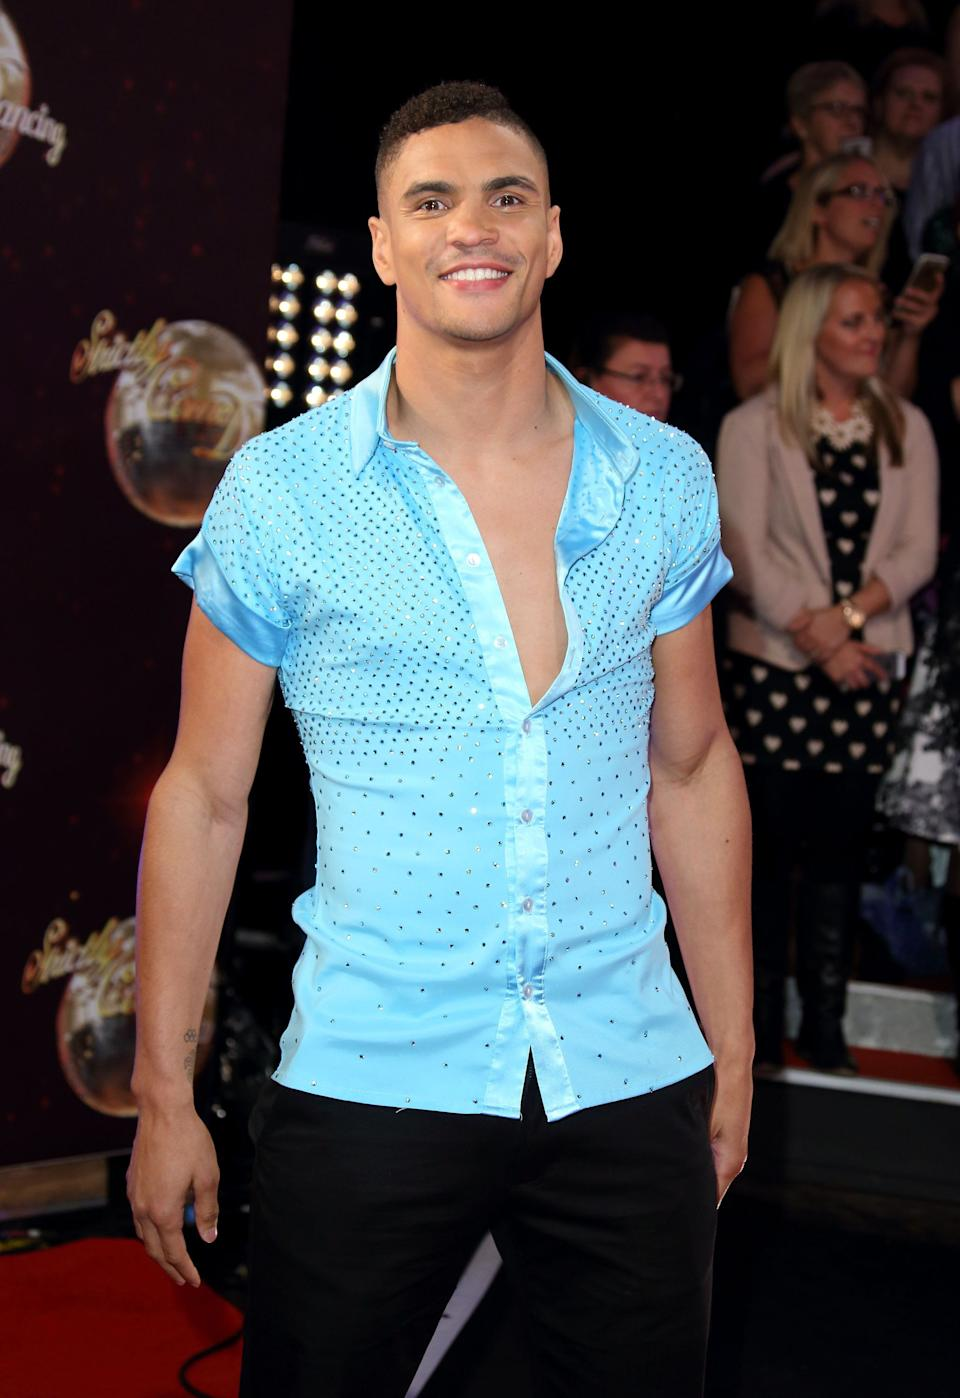 """When Anthony Ogogo and Oti Mabuse became the second contestants eliminated in 2015, they both came out and suggested they stood less of a chance at winning because they were black.<br /><br />While Anthony said he was surprised the BBC chose not to """"mix up"""" the minority contestants and professionals, Oti said: """"It's no wonder that I got partnered with Anthony and that we got voted off second week, obviously people at the BBC don't want to see a black person win.""""<br /><br />She later retracted her statement, and was welcomed back on the show in 2016, where she was partnered with Danny Mac."""